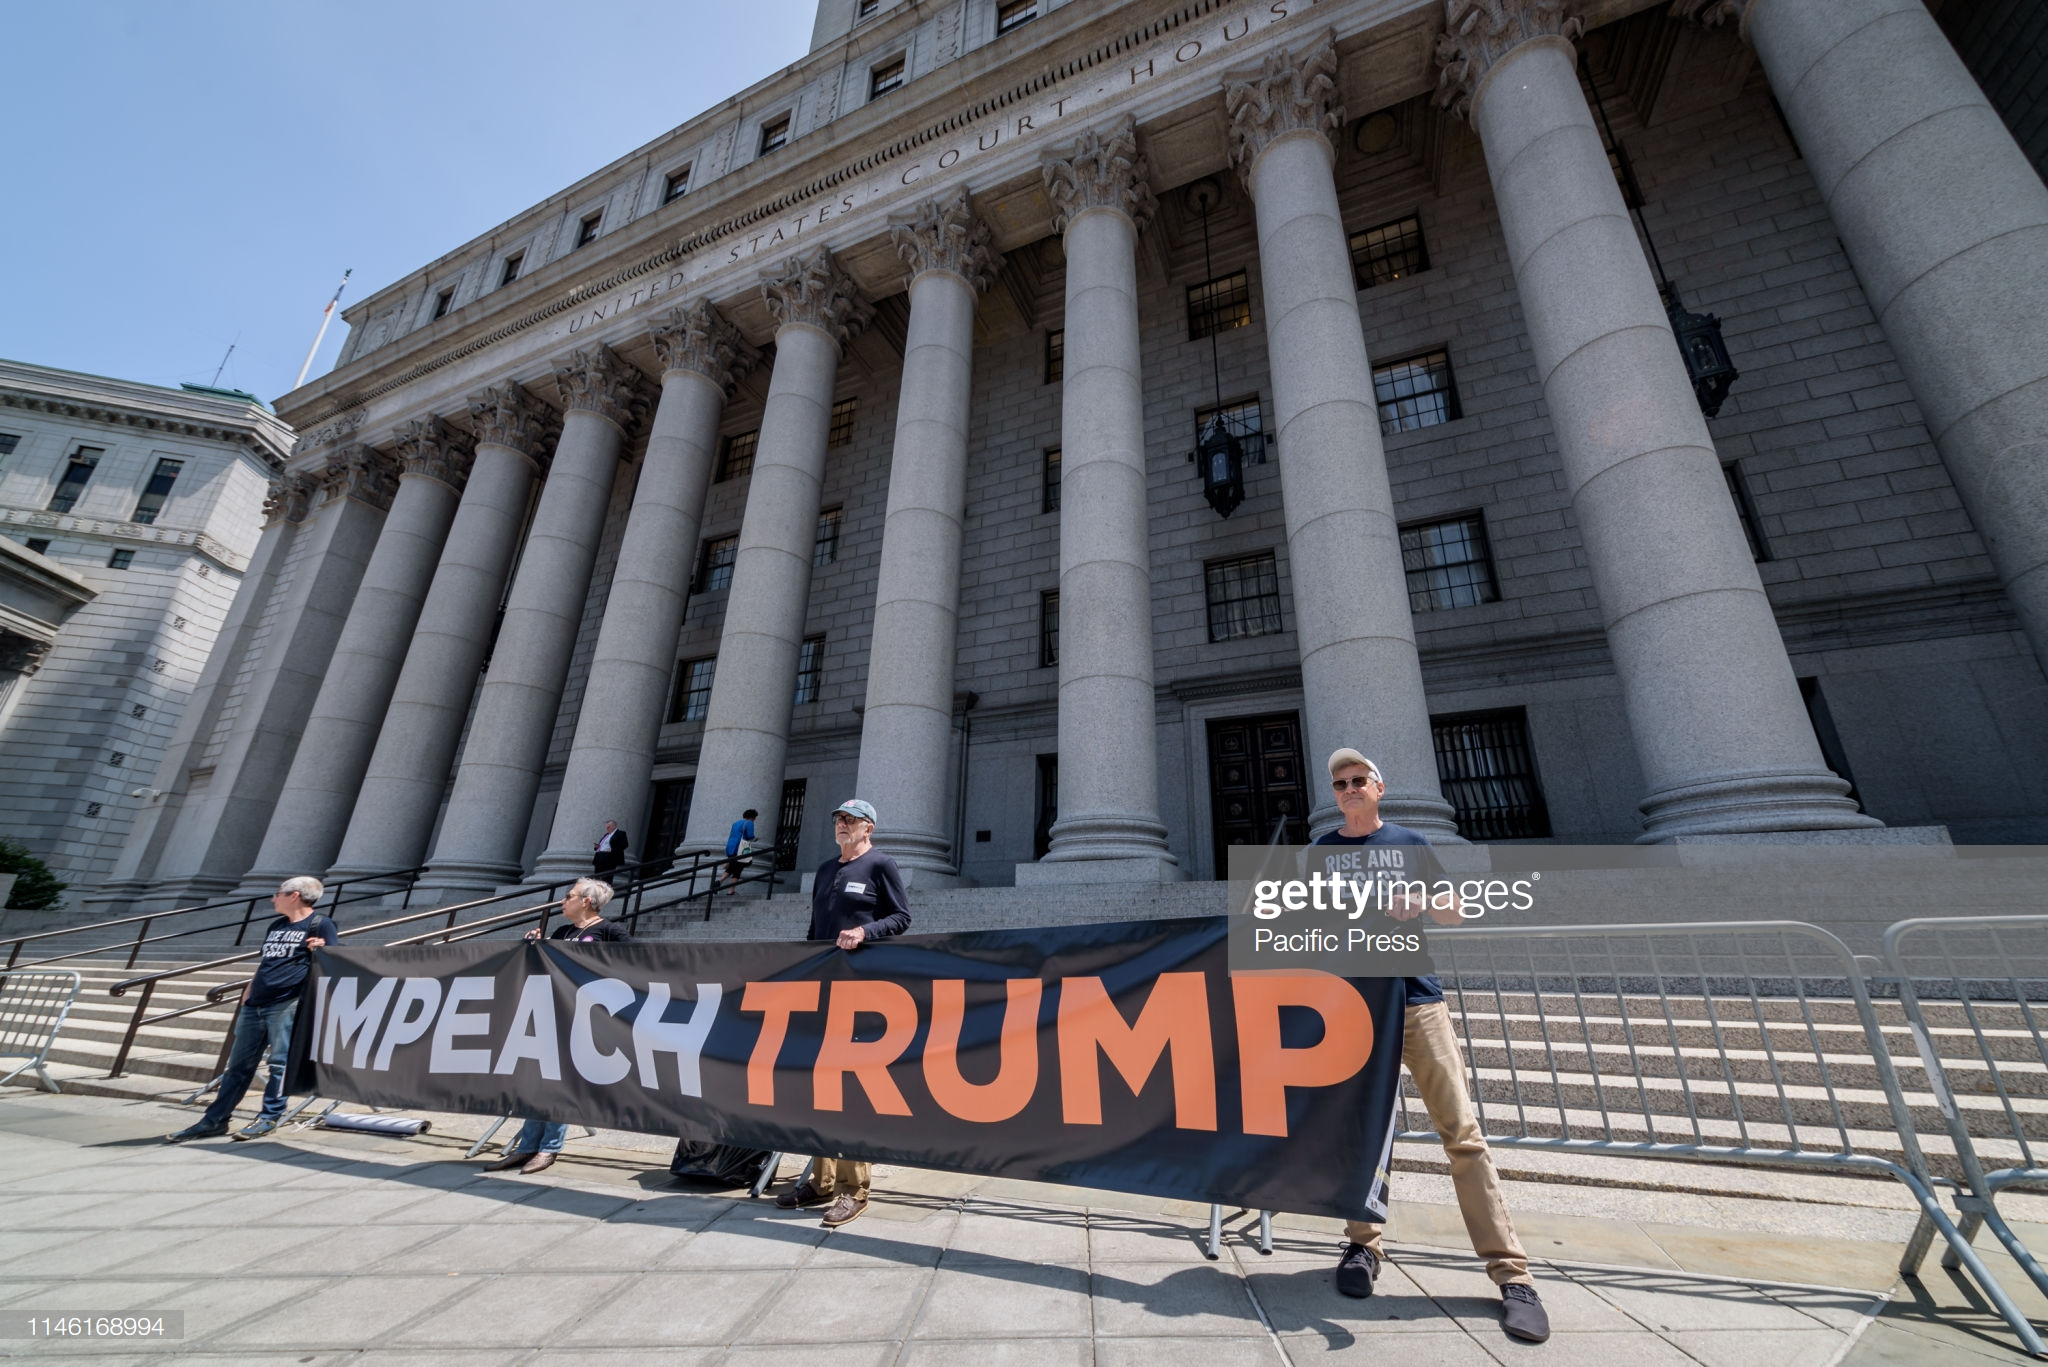 THURGOOD MARSHALL UNITED STATES COURTHOUSE, NEW YORK, UNITED STATES - 2019/05/22: The day Trump's lawyers (Consovoy McCarthy Park) appeared to represent the Trumps and Trump Organization in the Southern District Court of New York, members of the NYC activist group Rise and Resist held a demonstration in front of the U.S. Courthouse in Foley Square to demand the release of Trump's financial records. (Photo by Erik McGregor/Pacific Press/LightRocket via Getty Images)